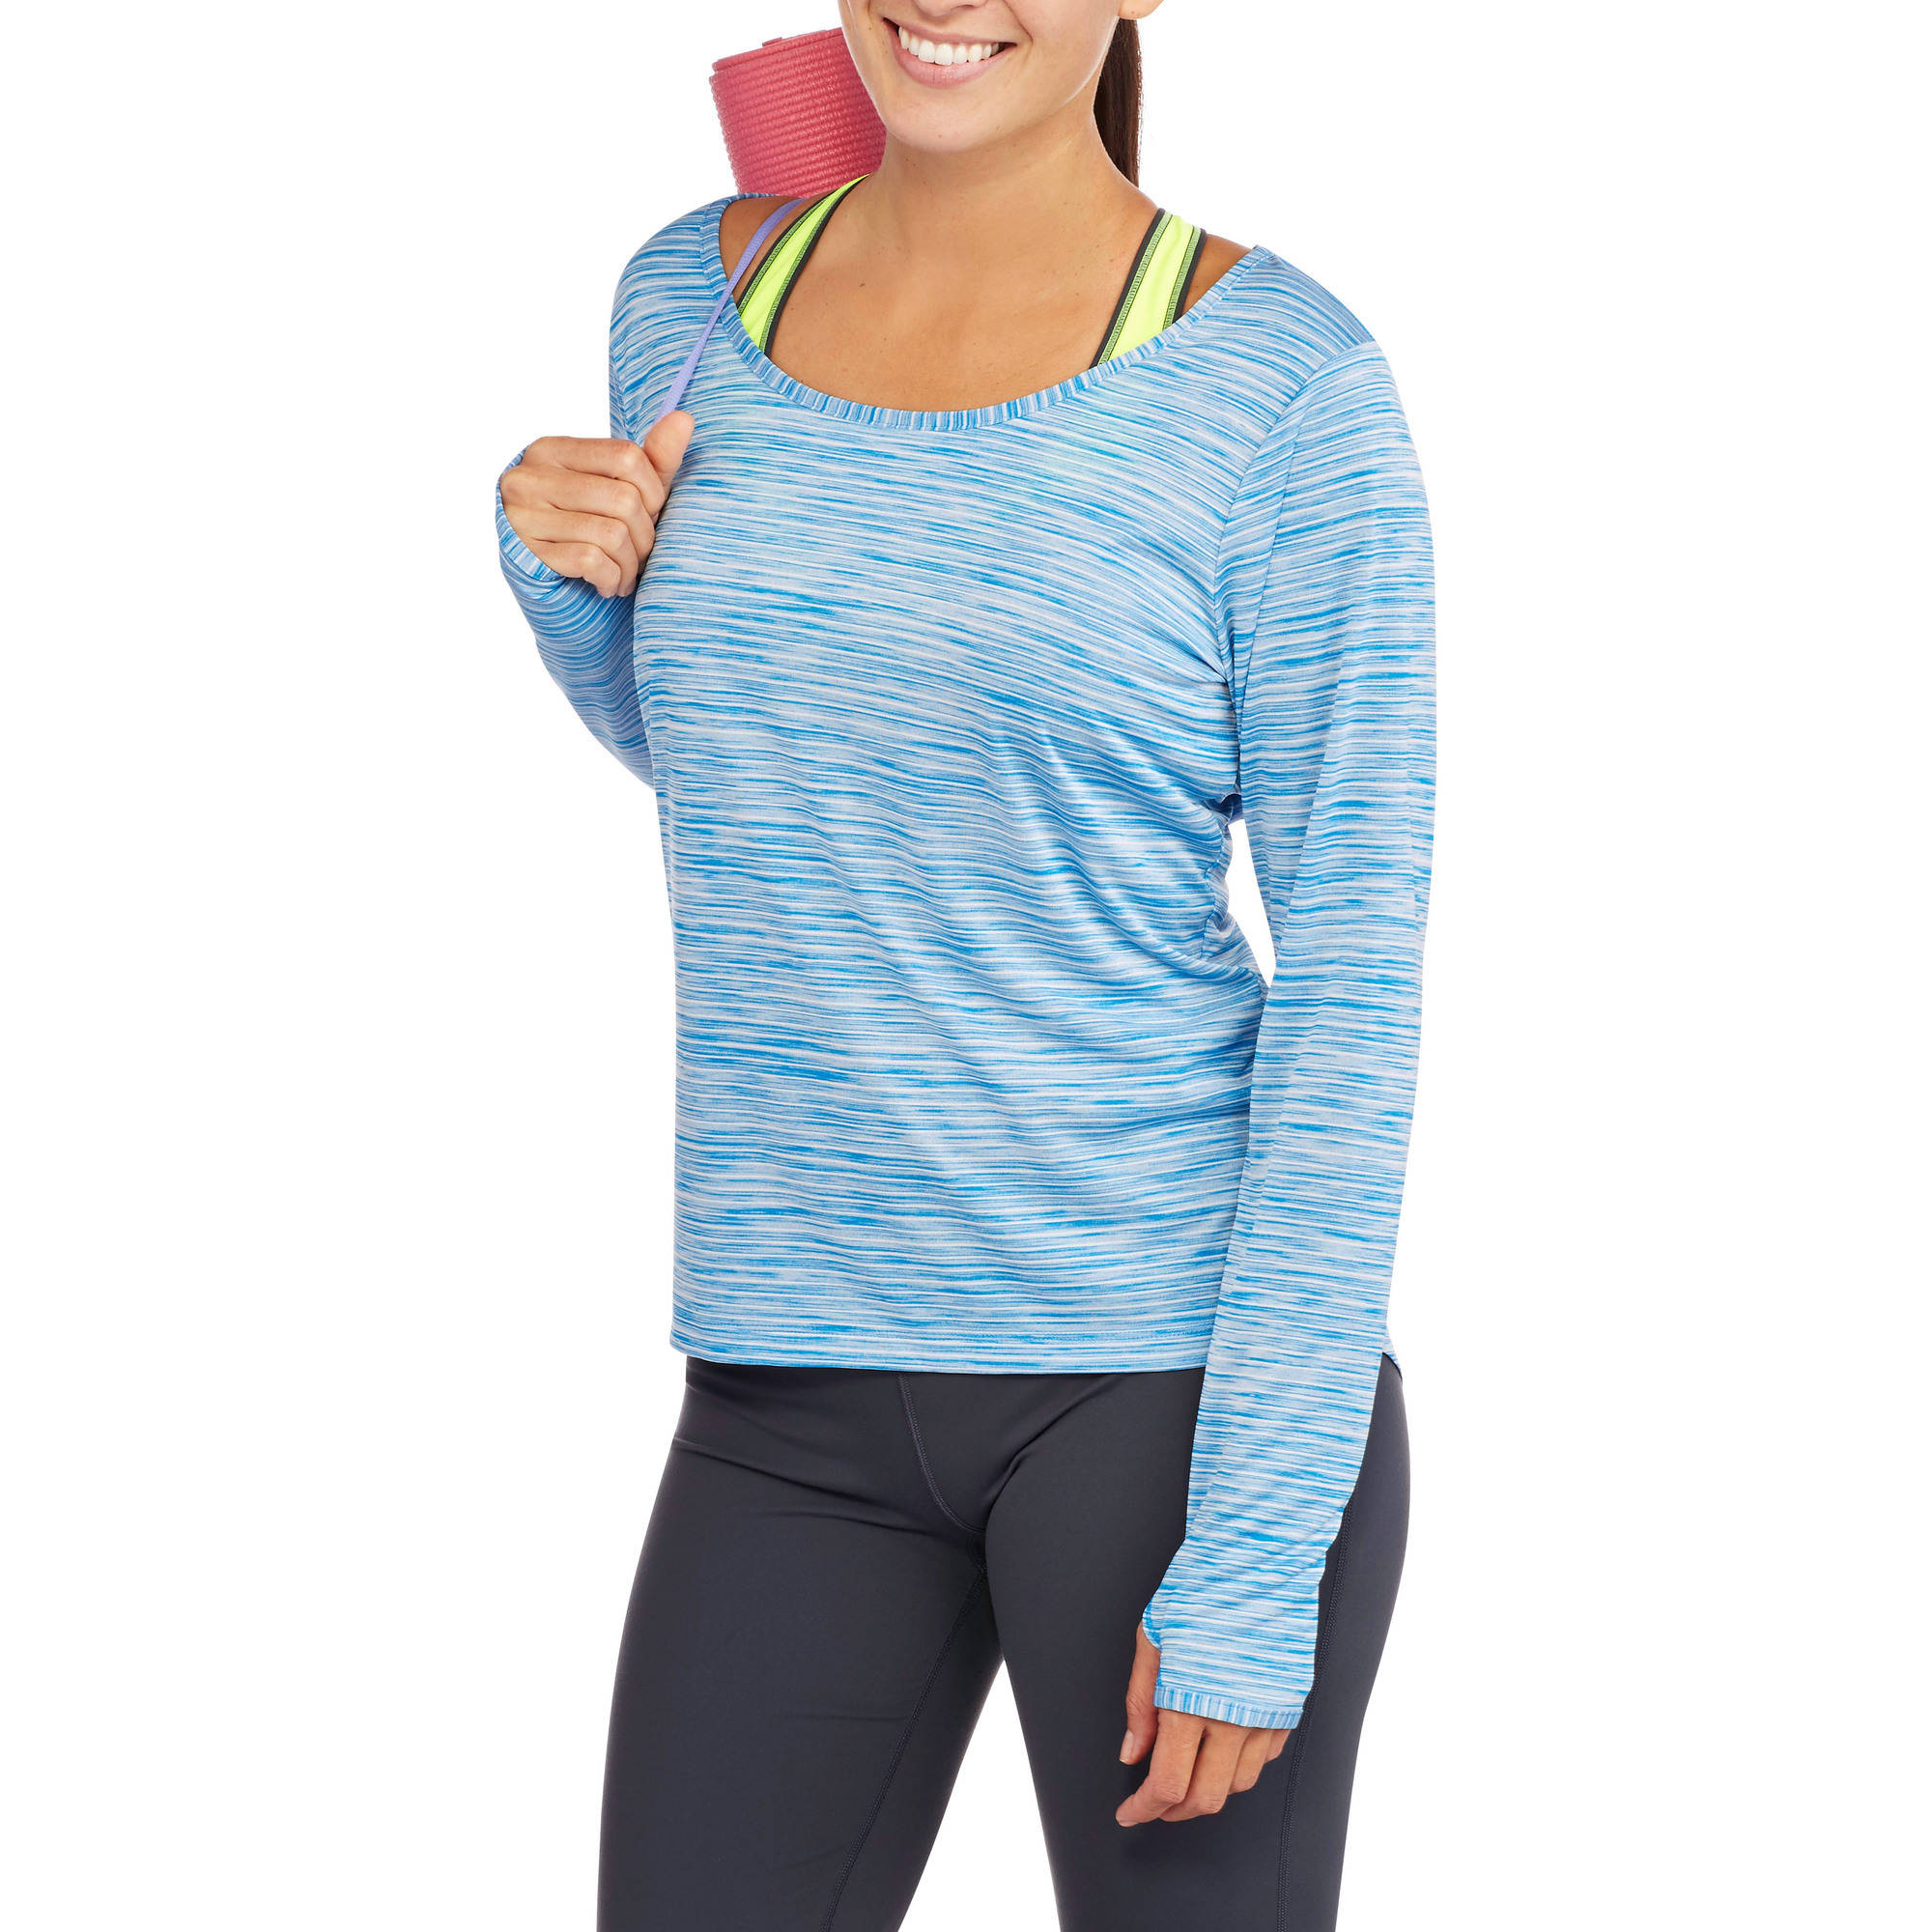 Danskin Now Studio Women's Long Sleeve Tee with Draped Back